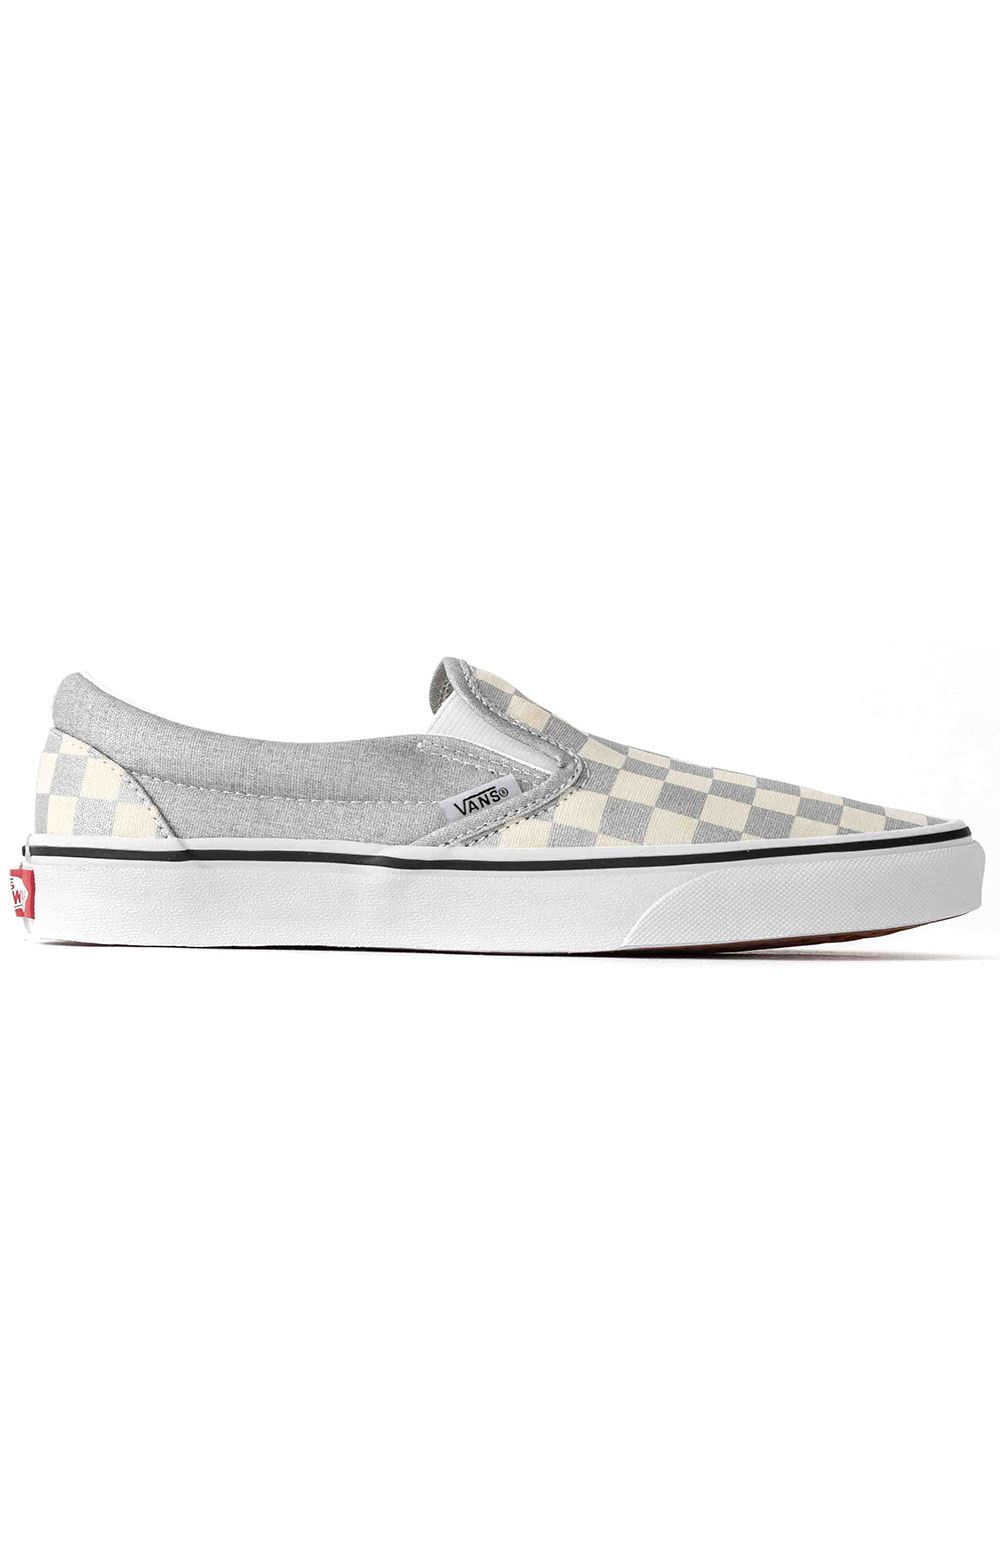 (U38WWS3) Checkerboard Classic Slip-On Shoe - Silver